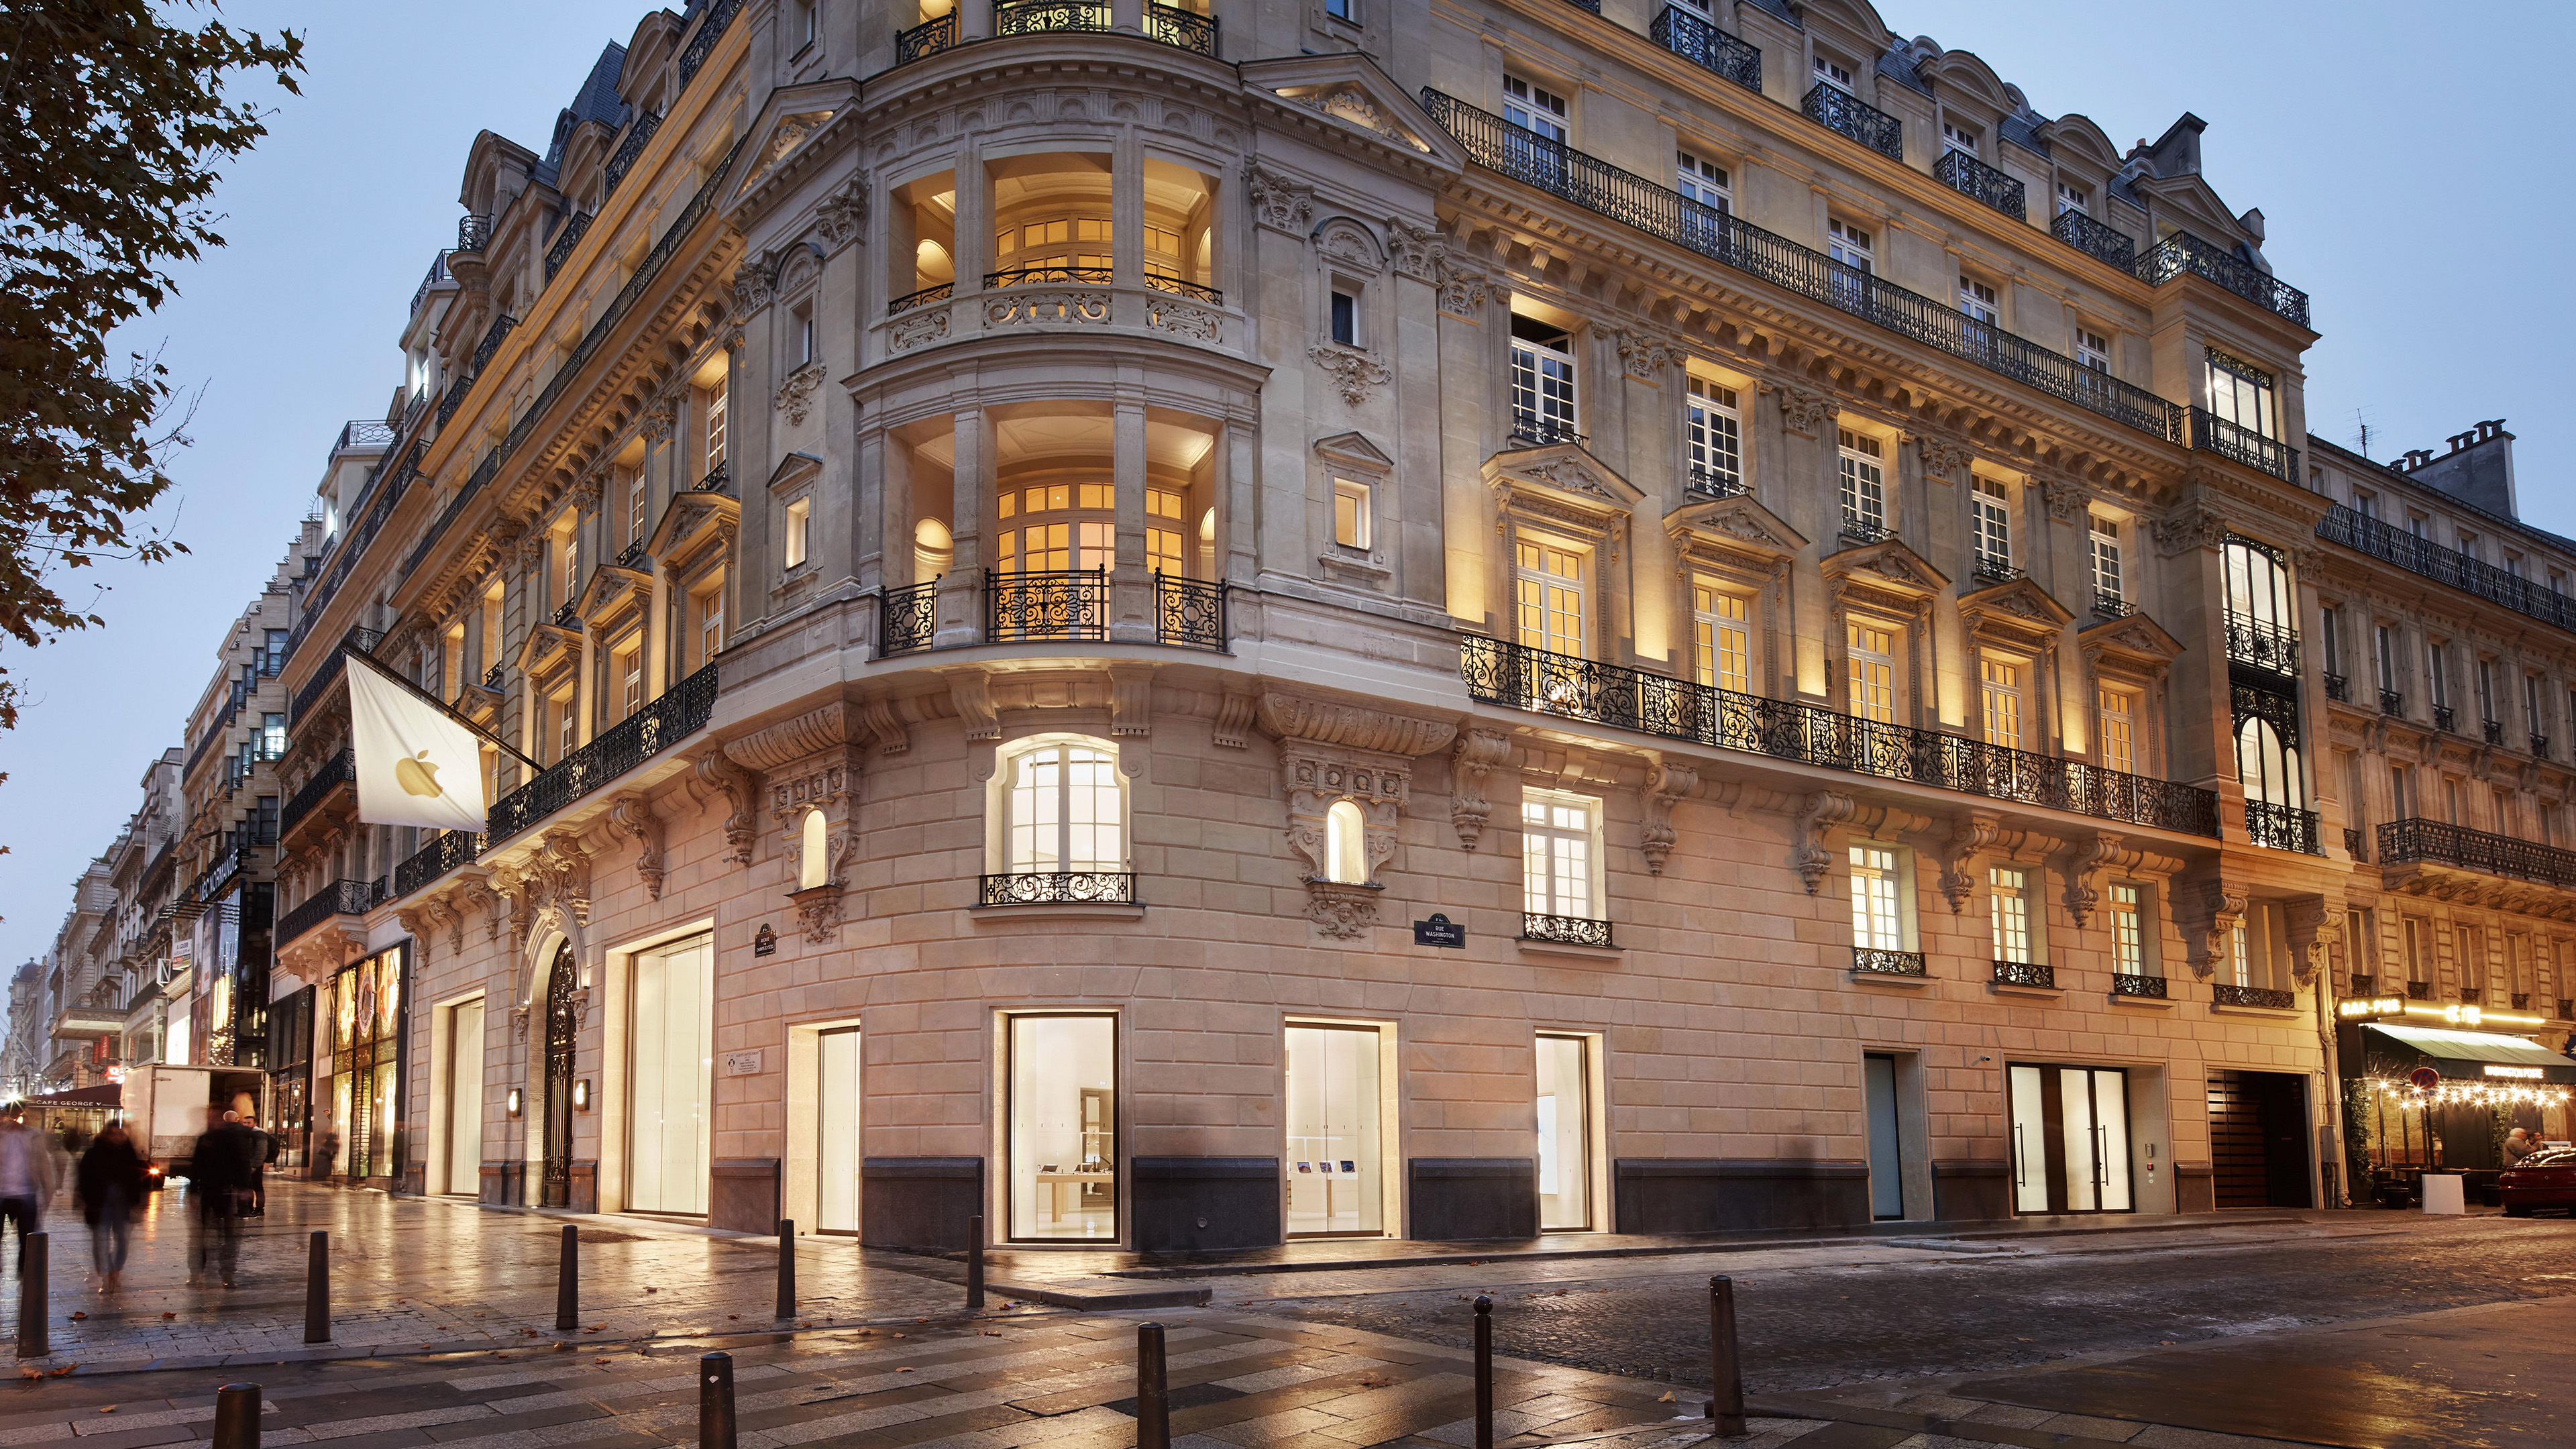 Apple's opulent Forum on Champs-Élysées previewed ahead of Sunday grand opening